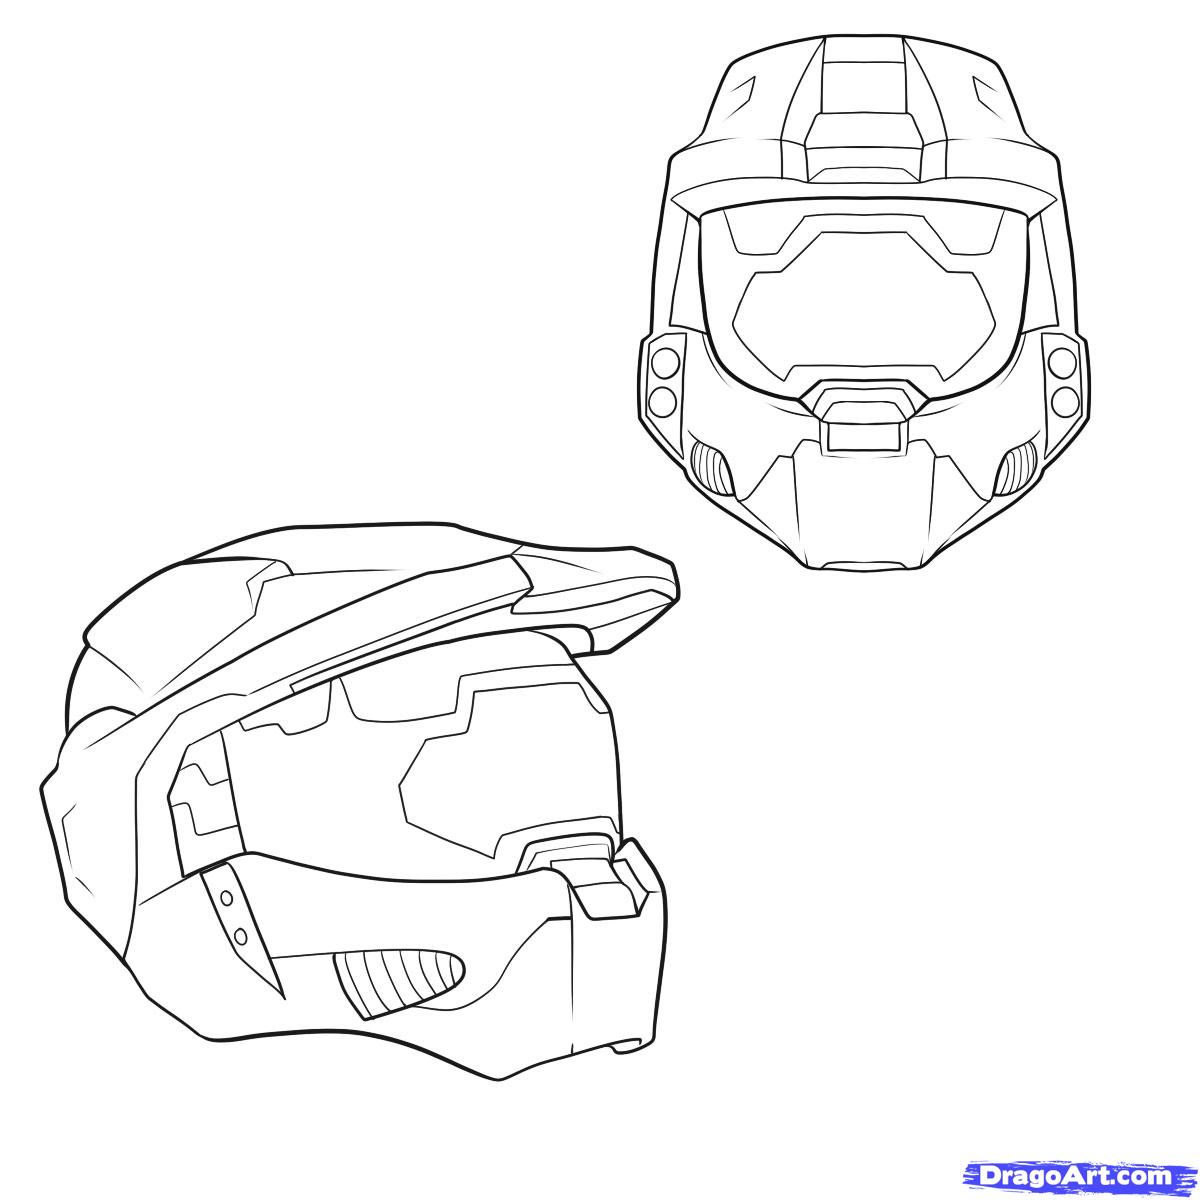 1200x1200 Themes How To Draw Master Chief Halo 5 Plus Halo 4 Master Chief